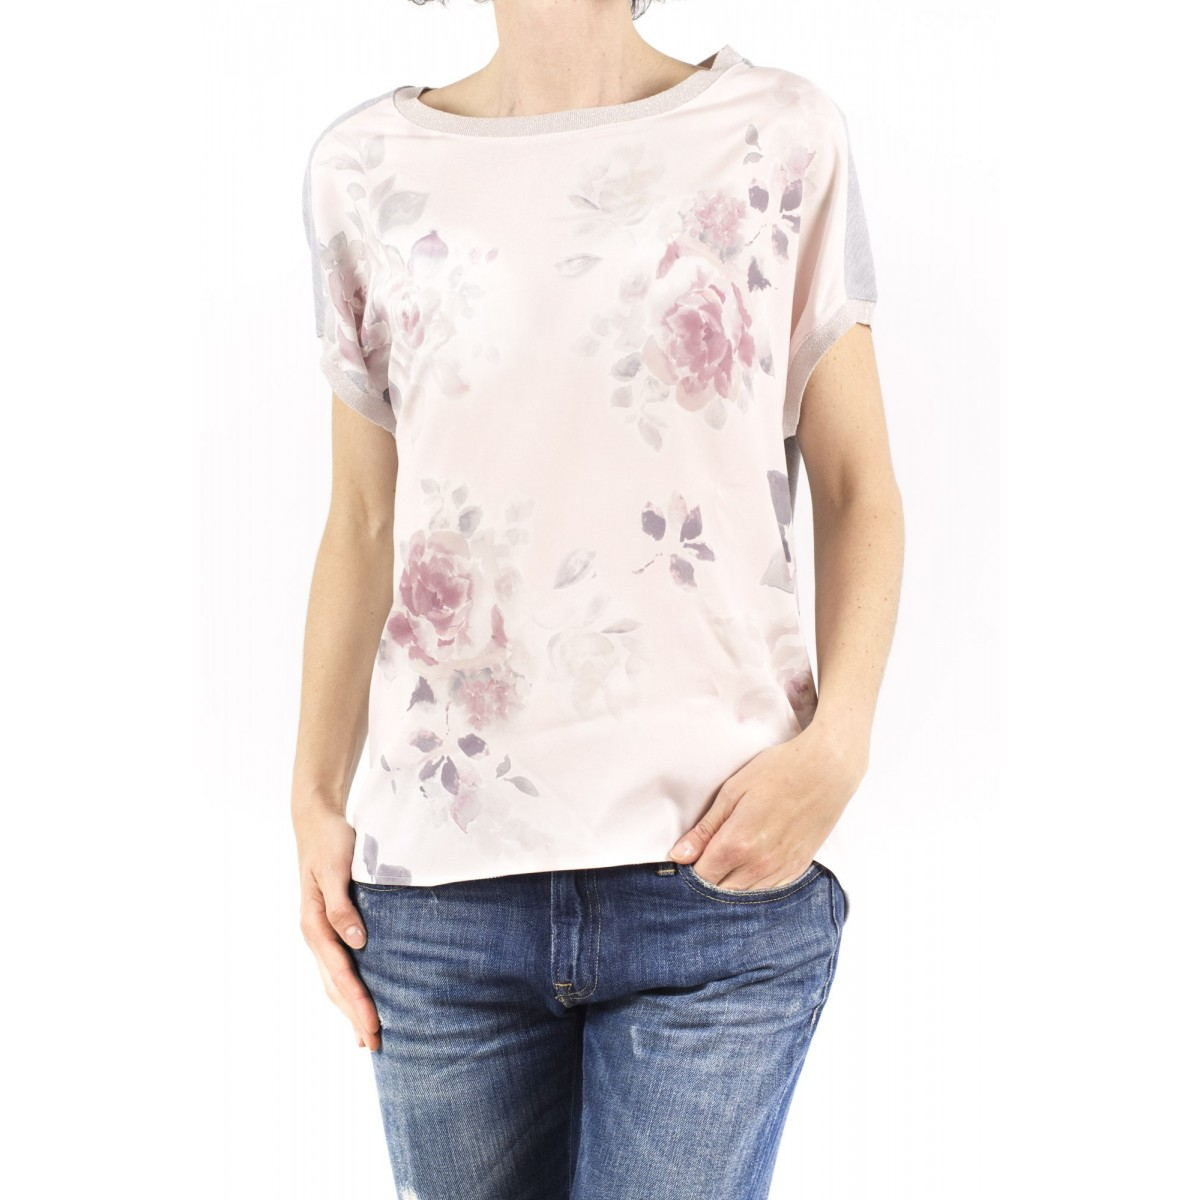 T-Shirt Kangra Woman - 8821/63 56 - rosa